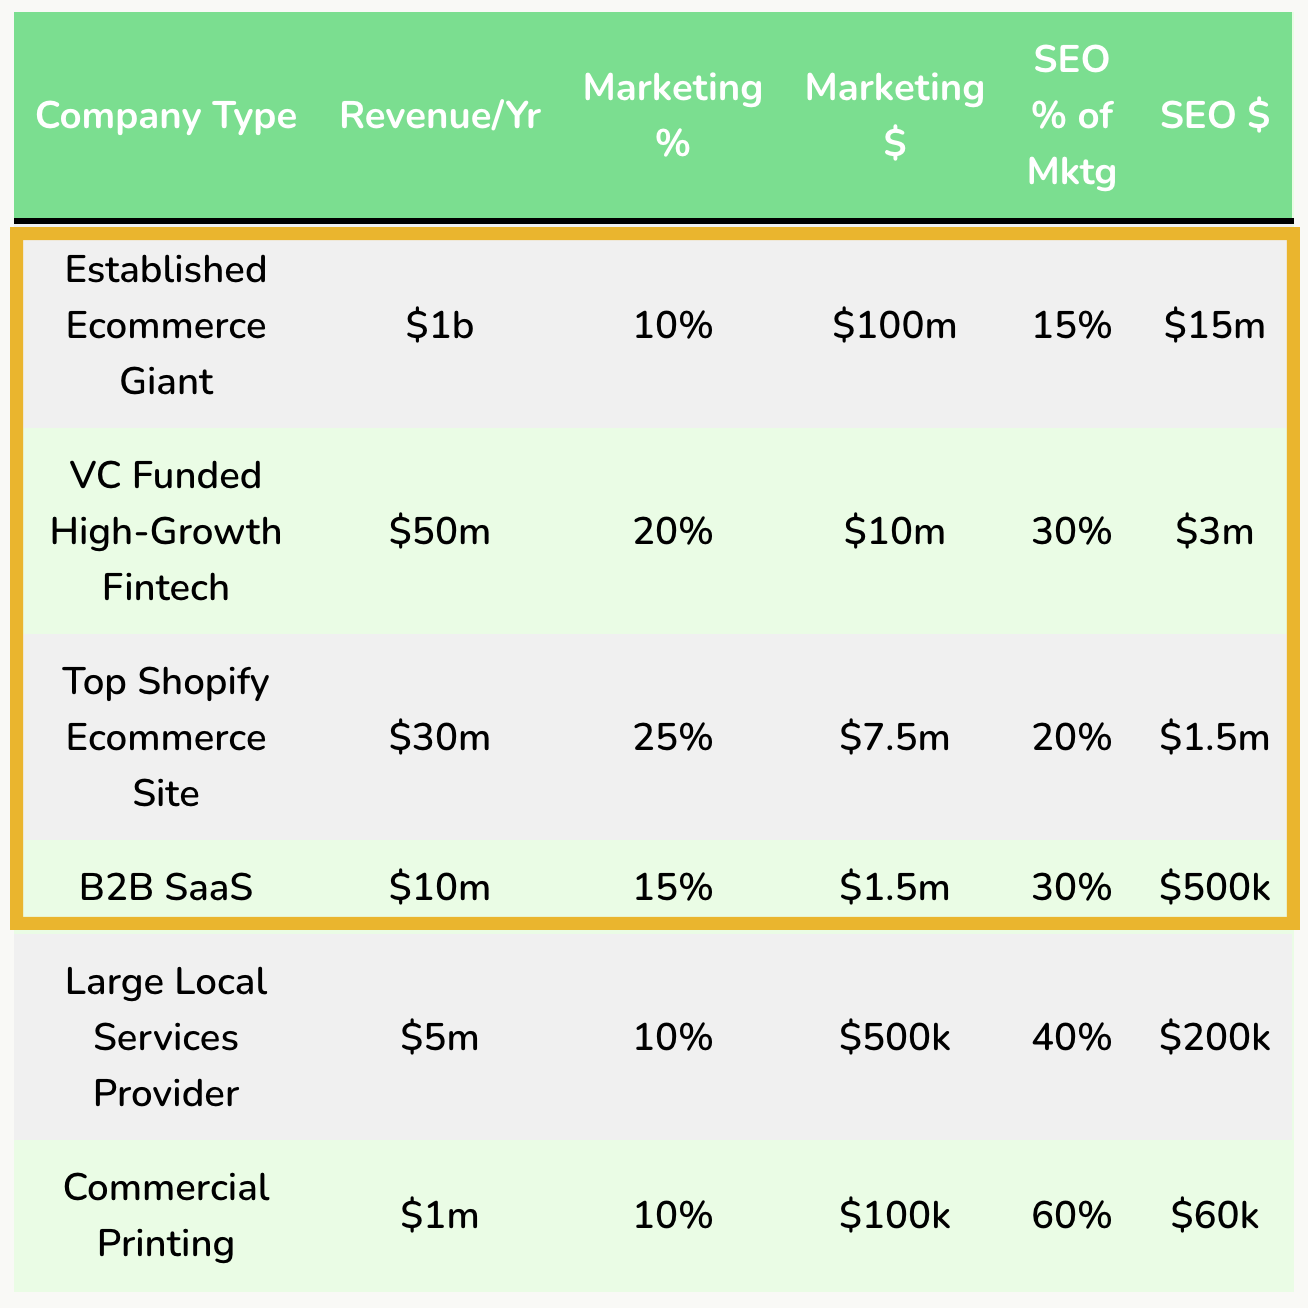 chart showing breakdown of revenue, and SEO spending